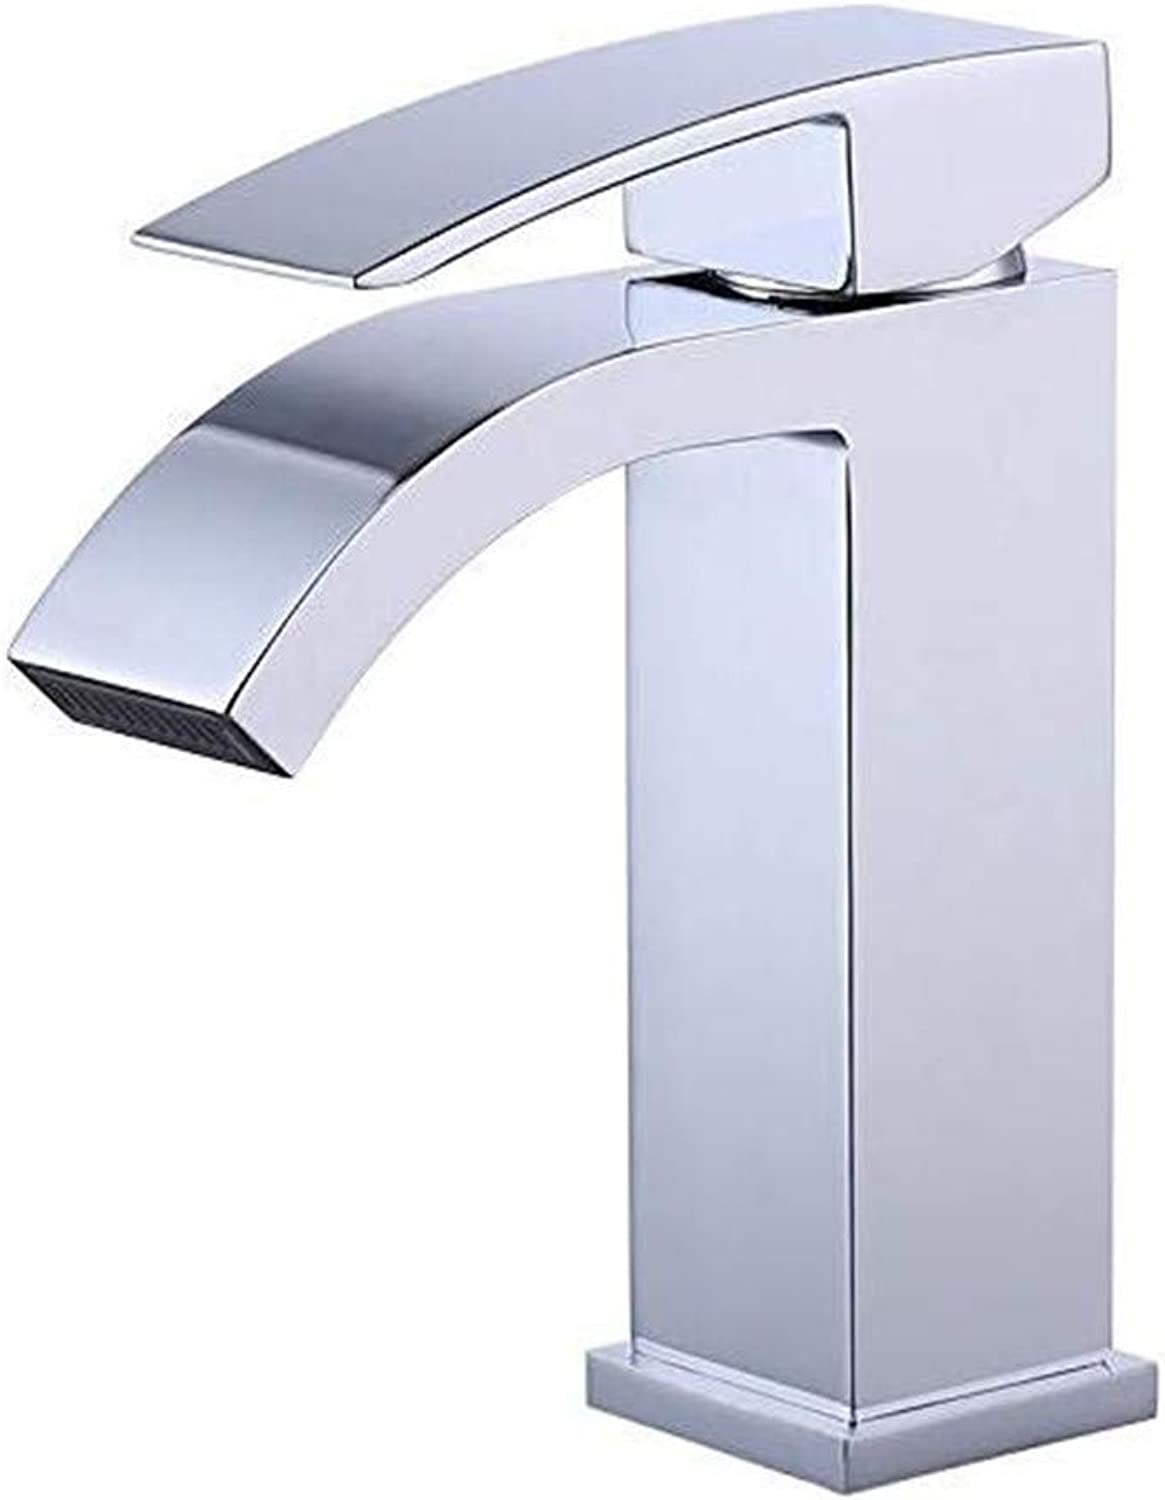 Oudan Faucet Basin Faucet Kitchen Faucetsingle Handle Waterfall Bathroom Vanity Sink Faucet with Extra Large Rectangular Spout Chrome (color   -, Size   -)